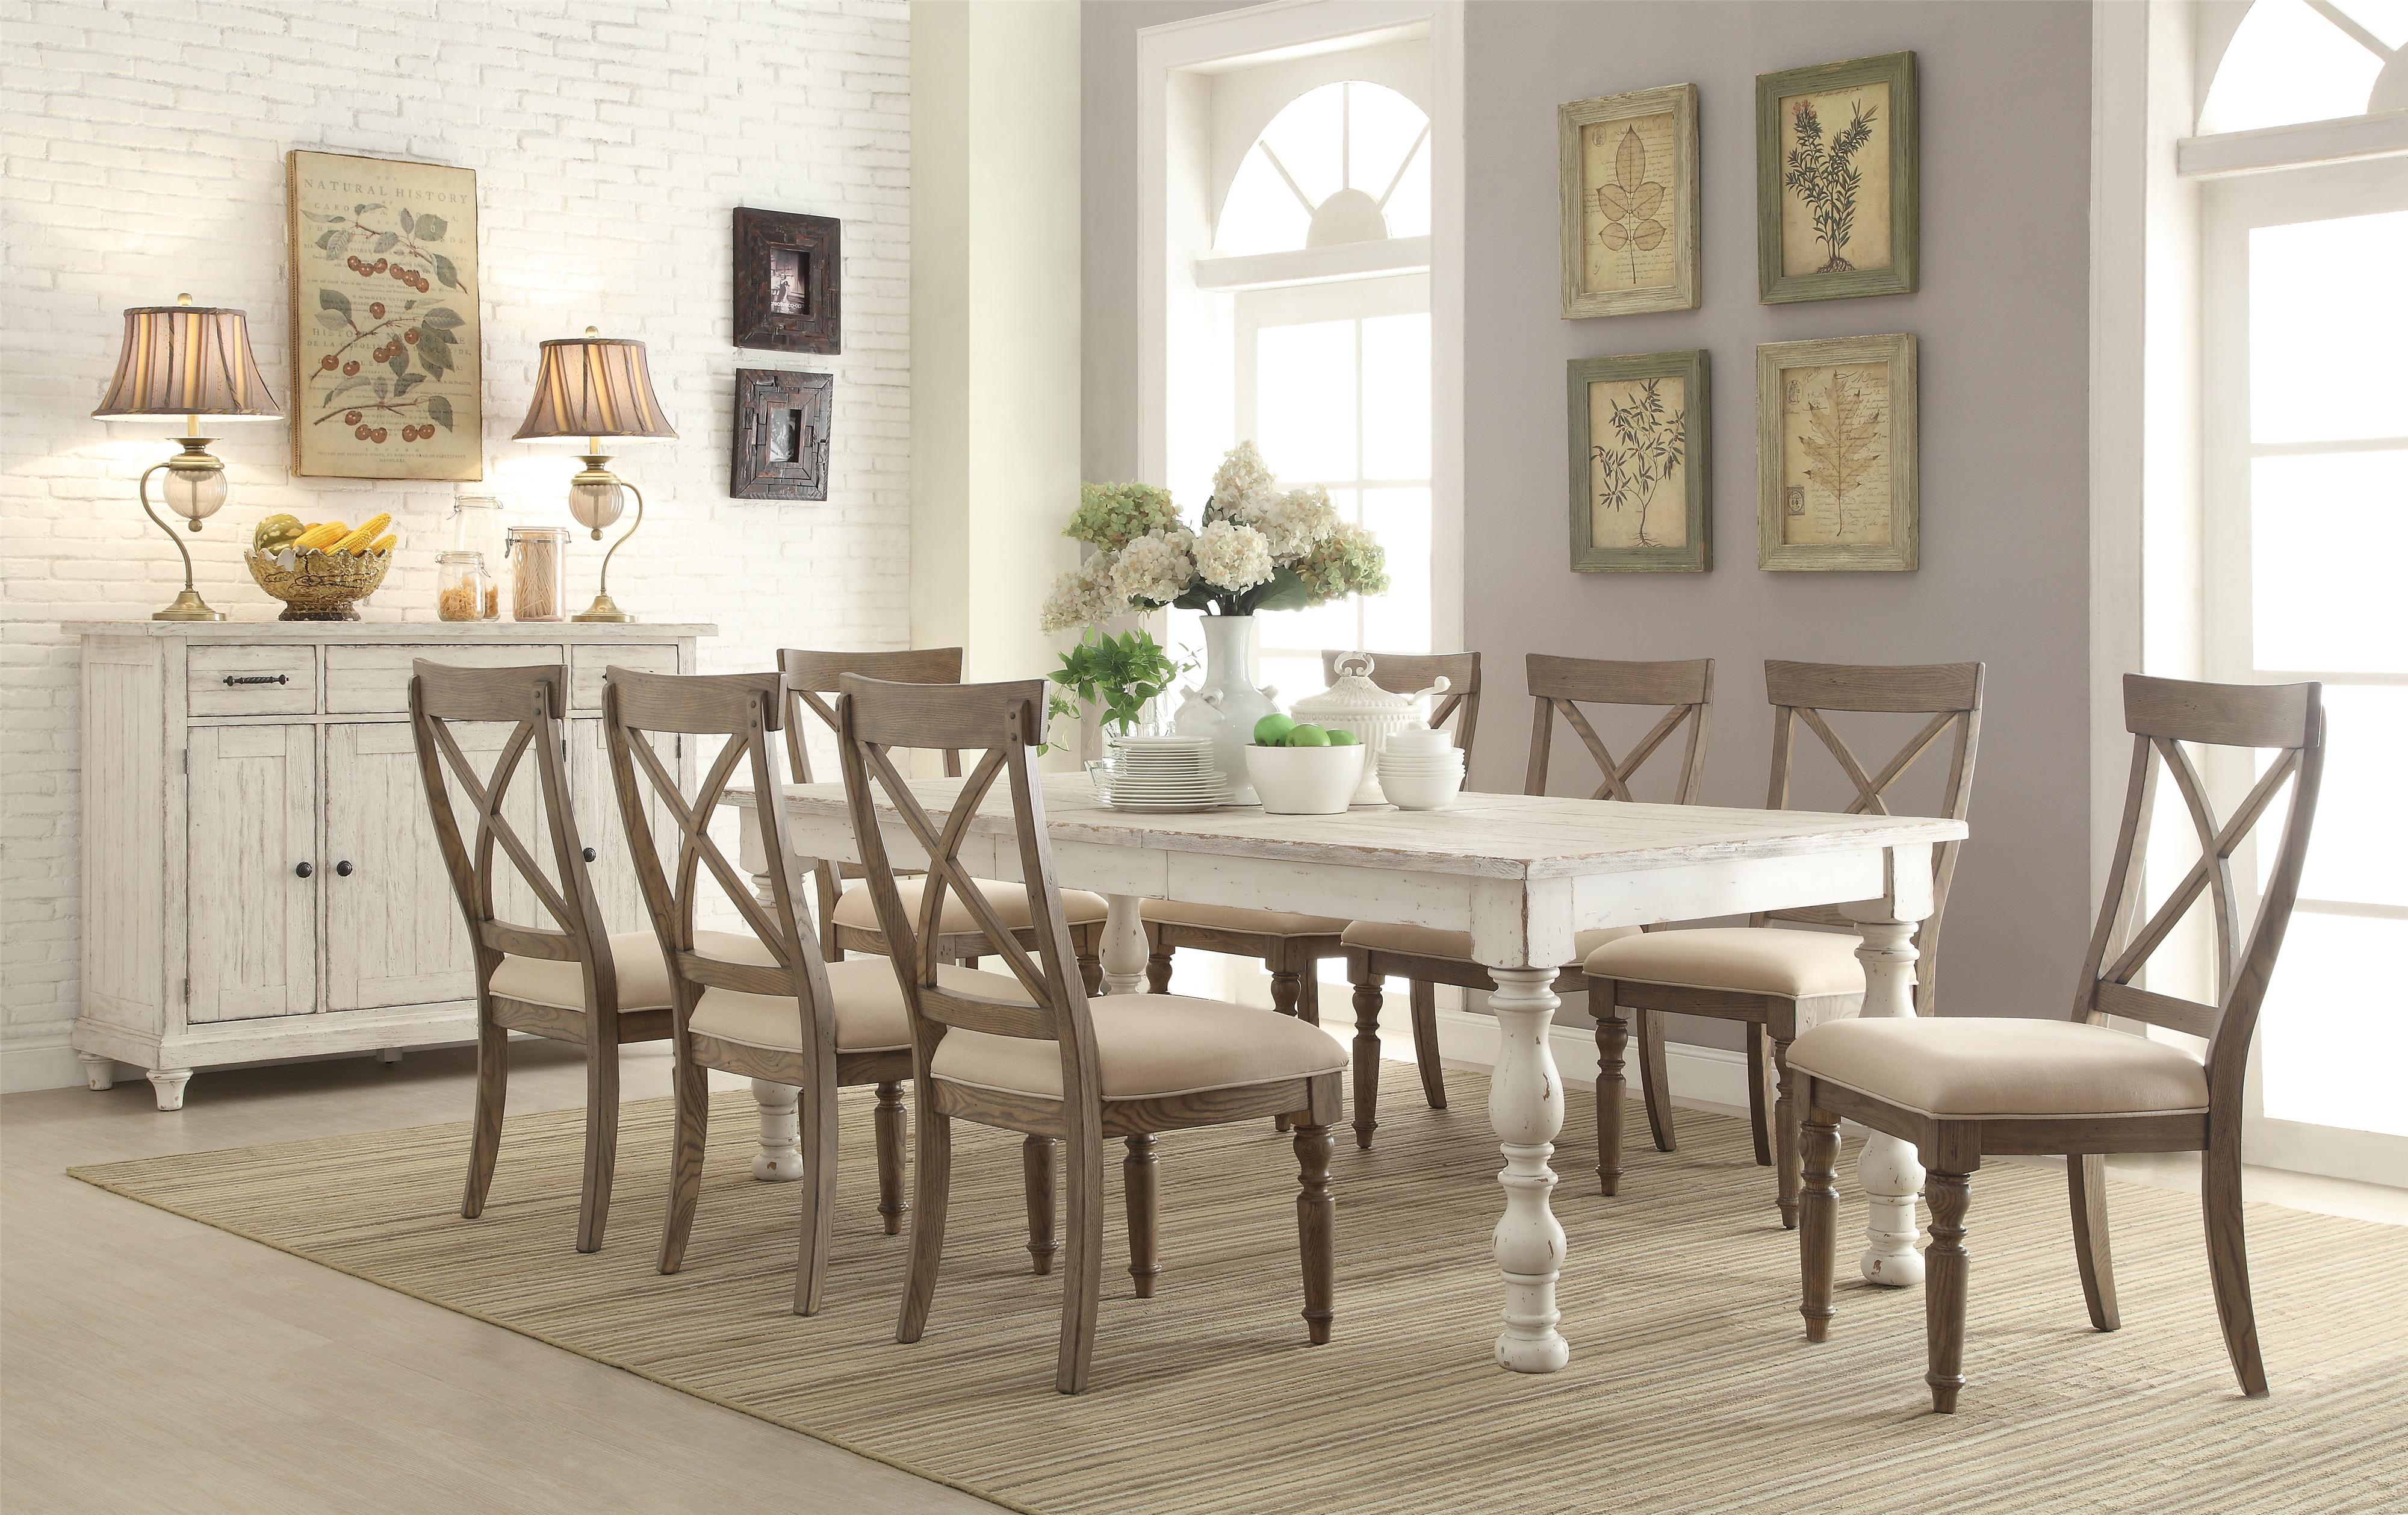 Aberdeen Dining Room Group by Riverside Furniture at Esprit Decor Home Furnishings